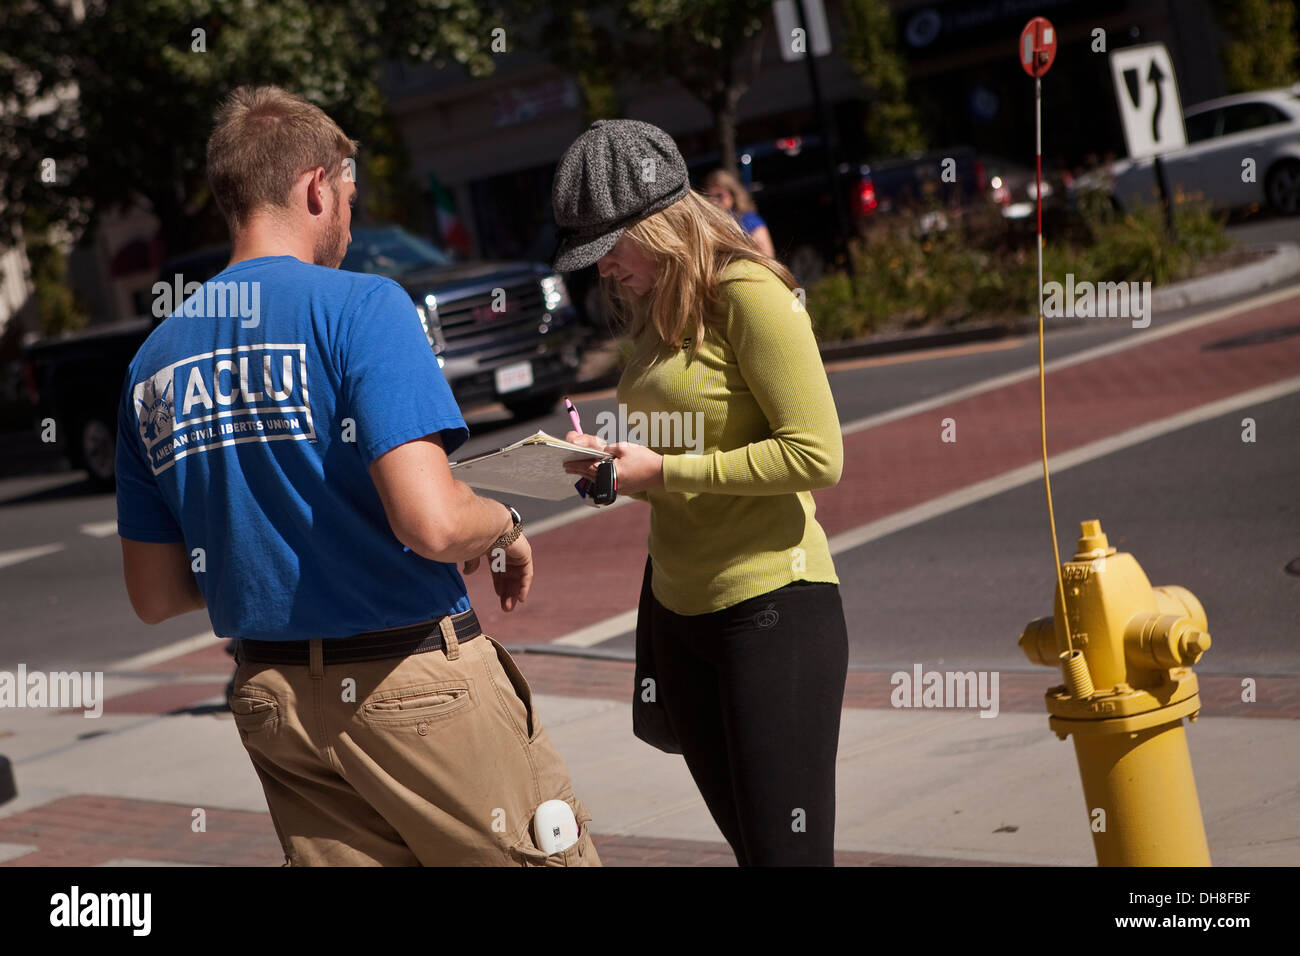 A man wearing an ACLU shirt asks a woman to sign a petition in Pittsfield, Massachusetts - Stock Image